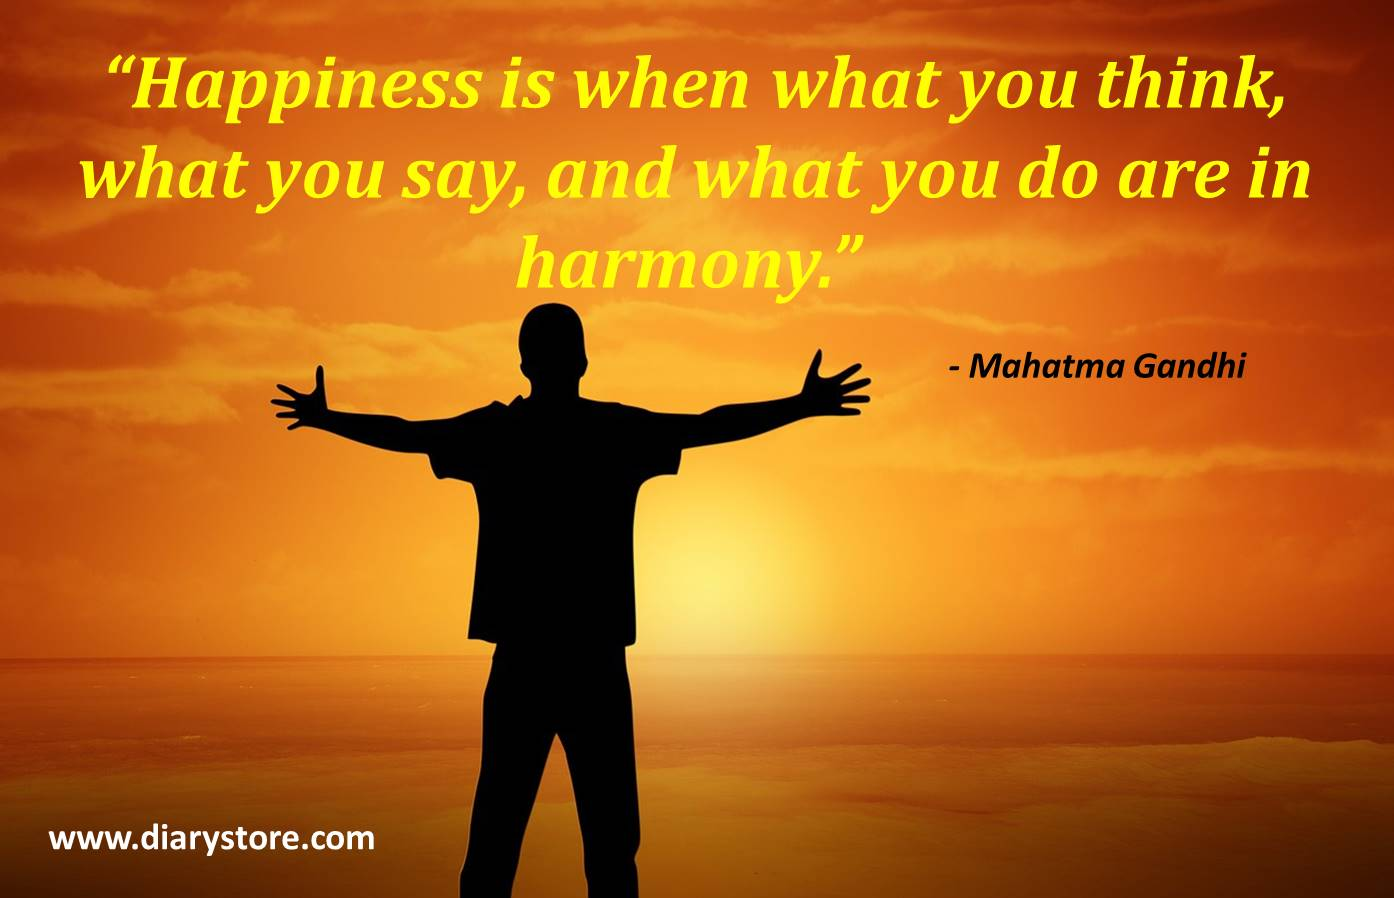 Quotes On Happiness Happiness Quotes  Happy Quotations Most Inspirational Quotes